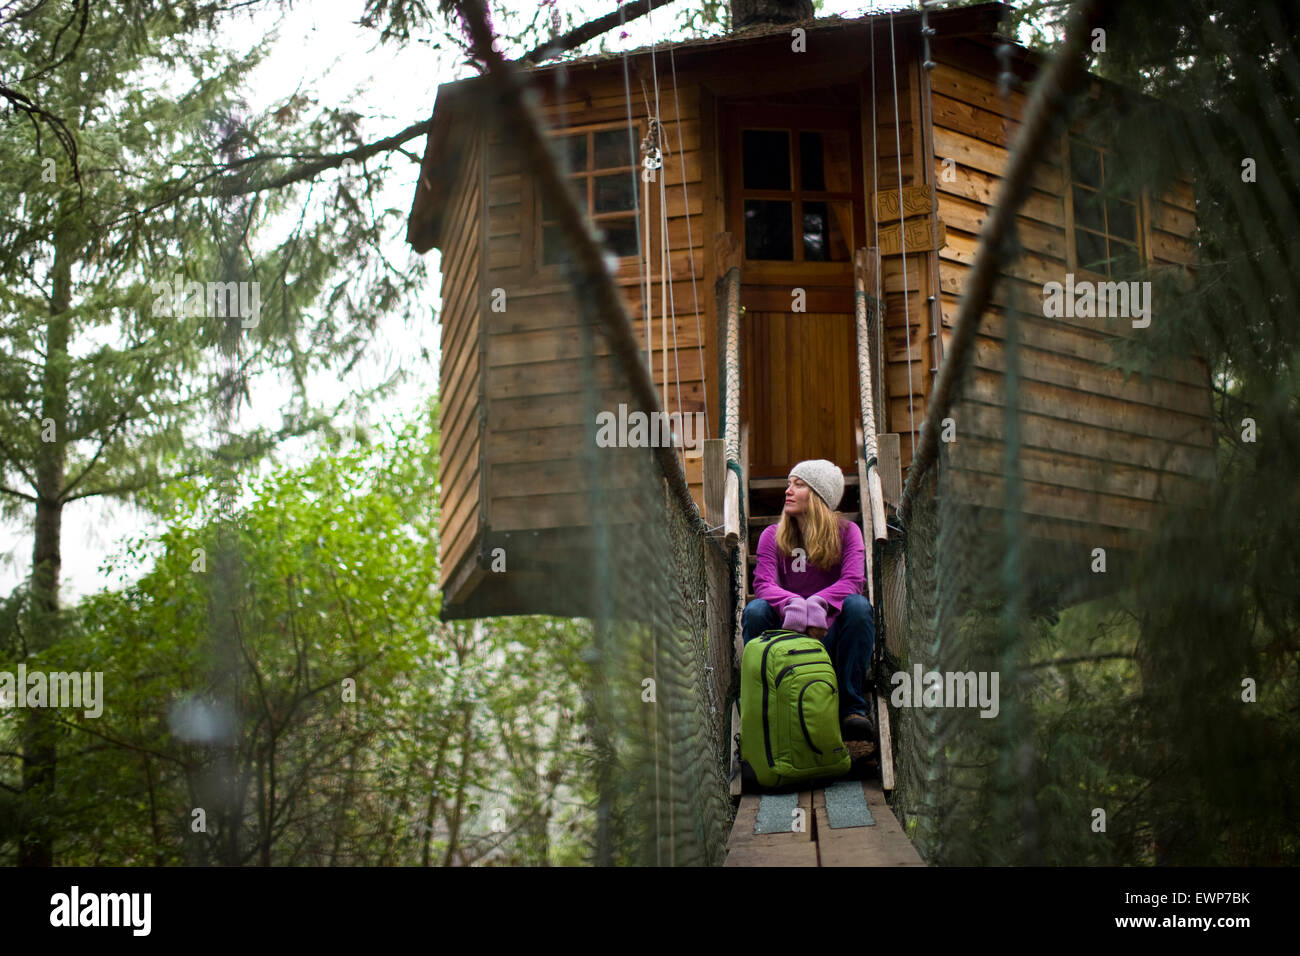 Hanging Tree House Adult Woman With Her Backpack Hanging Out In Front Of A Tree House